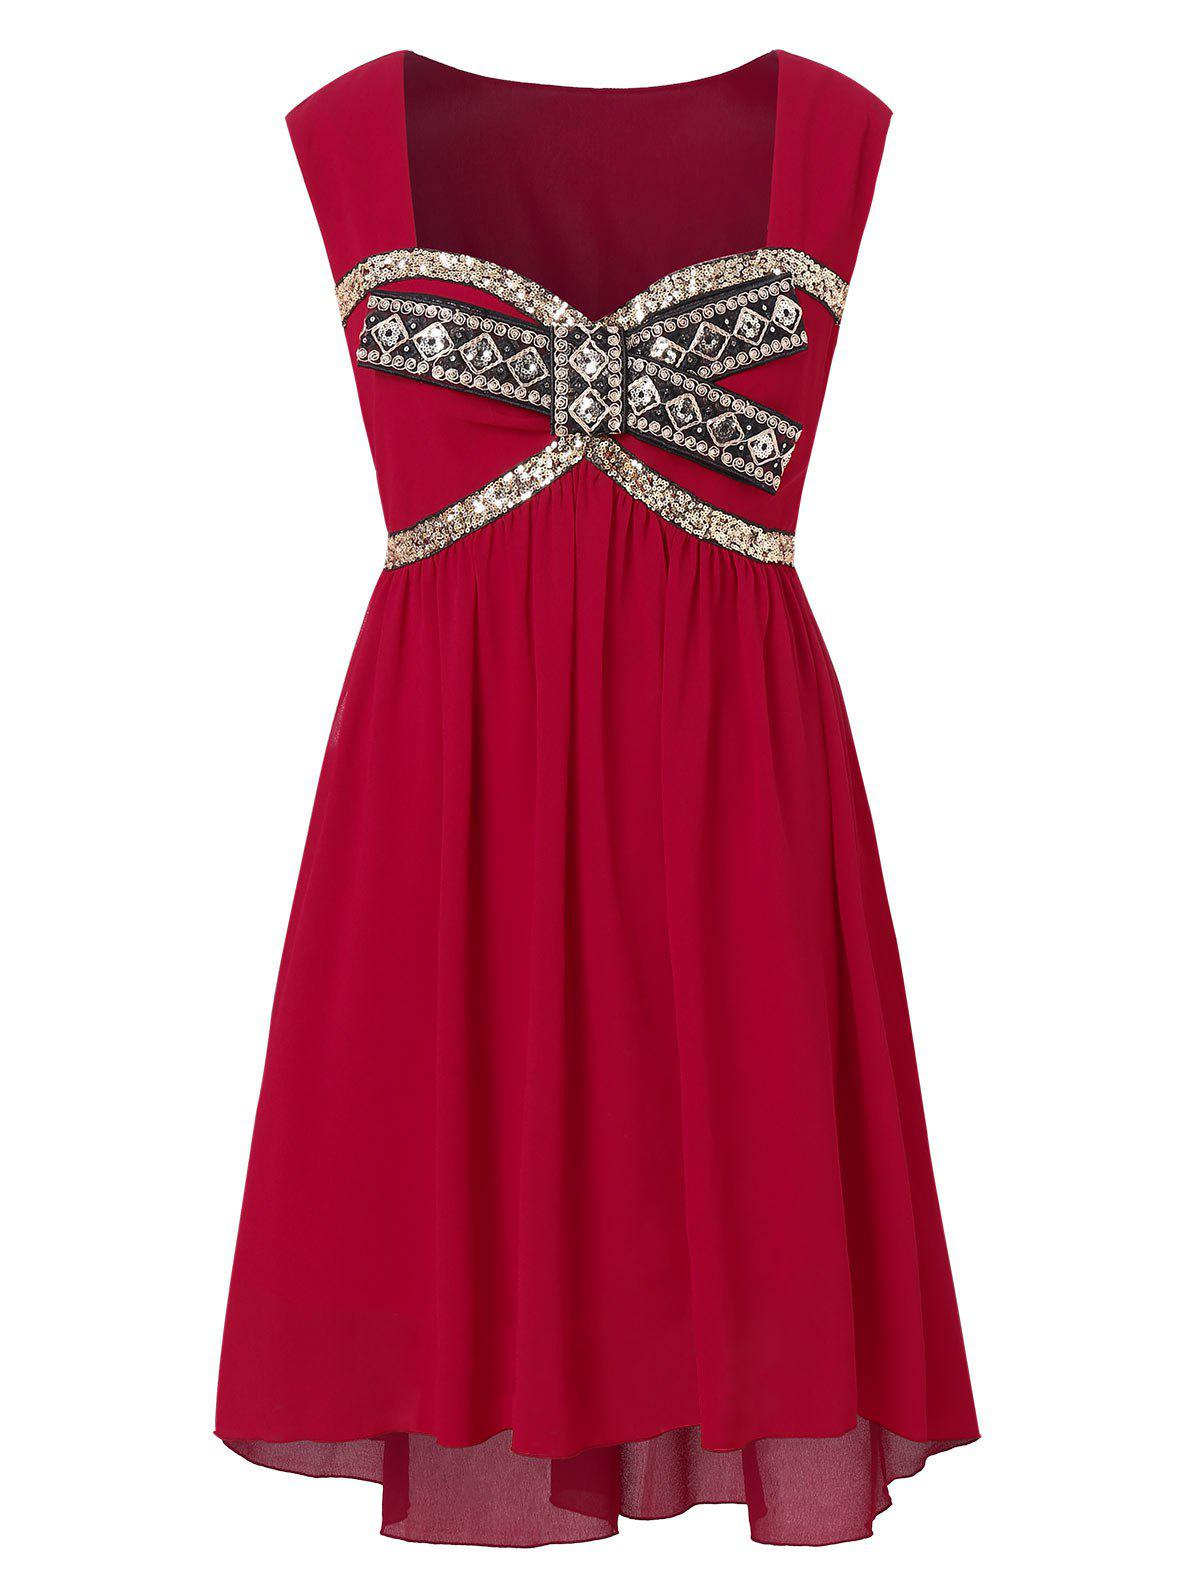 d68eafa7d7f 35% OFF  Sweetheart Neck Plus Size Sequin Embellished Party Dress ...